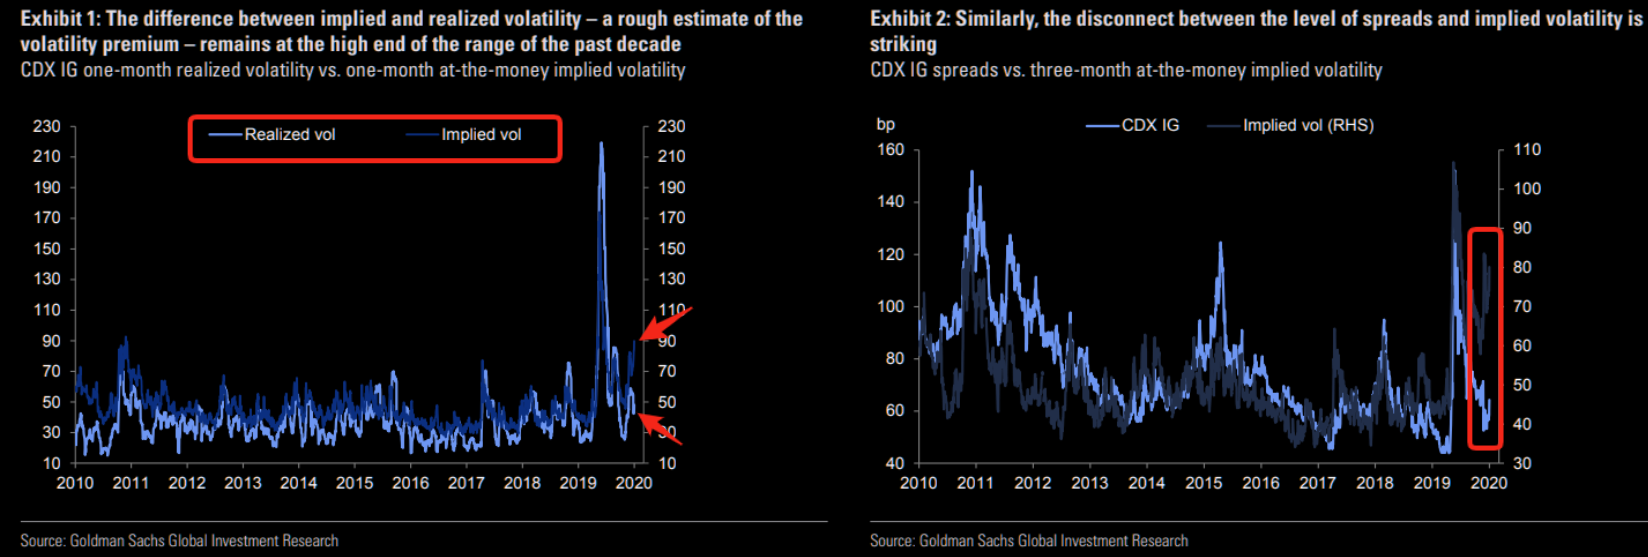 (Credit) volatility premium remains stubbornly high